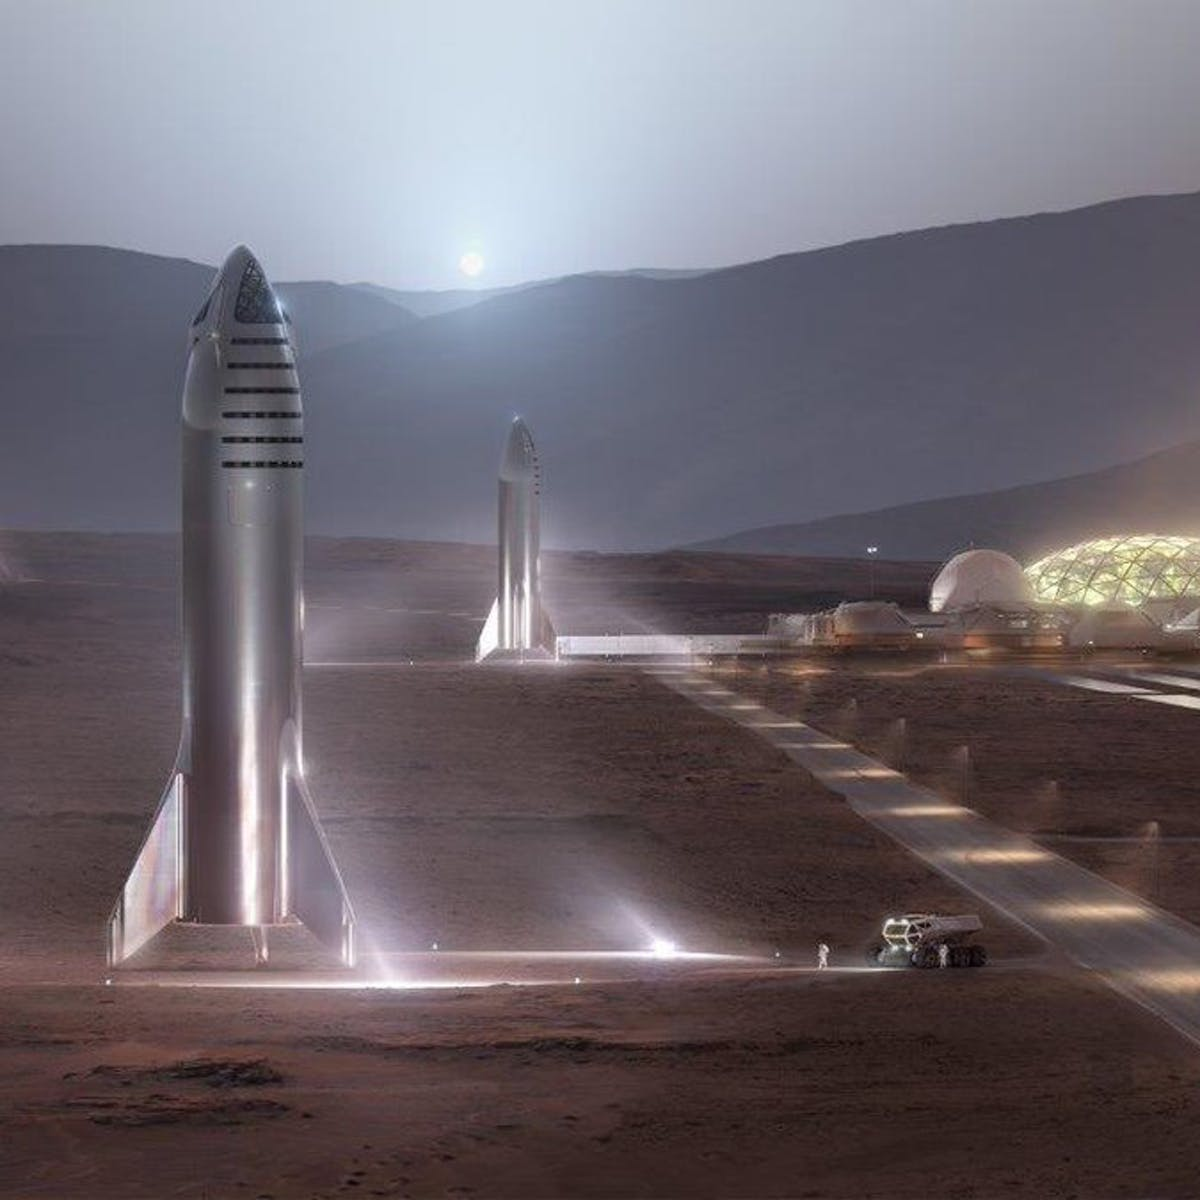 SpaceX Starship: Elon Musk teases 100-person cargo bay destined for Mars